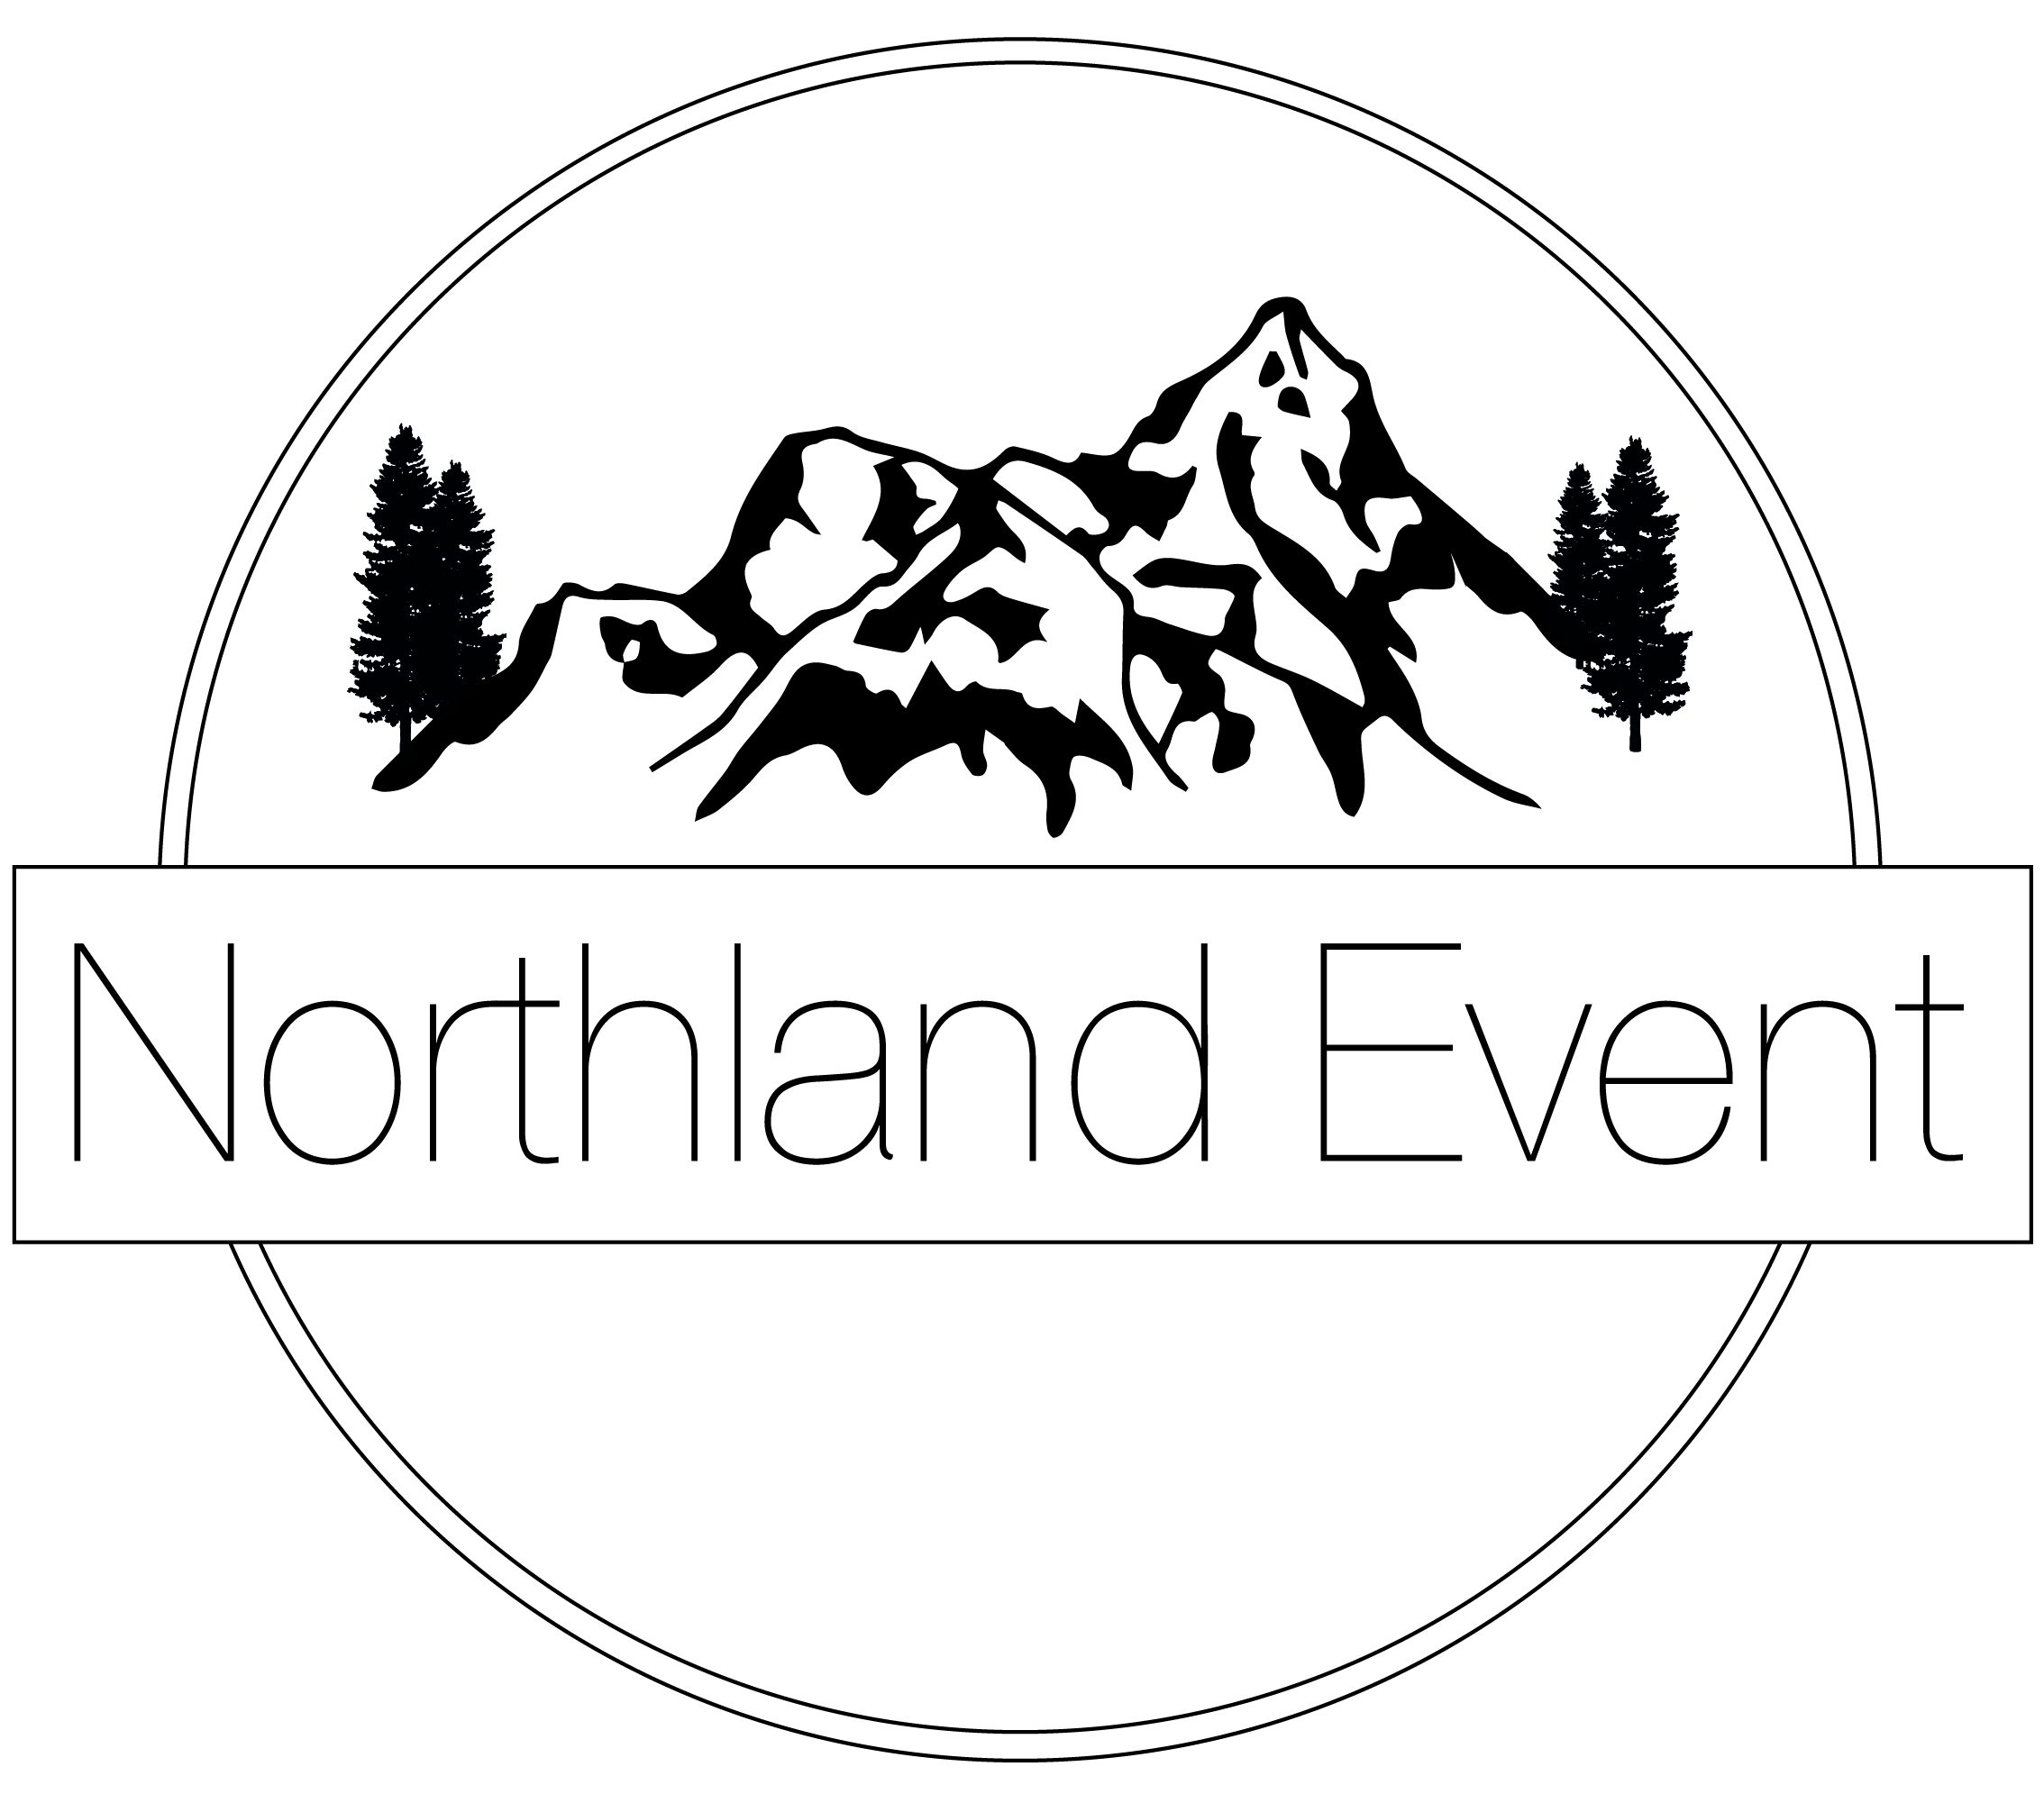 Northland Event